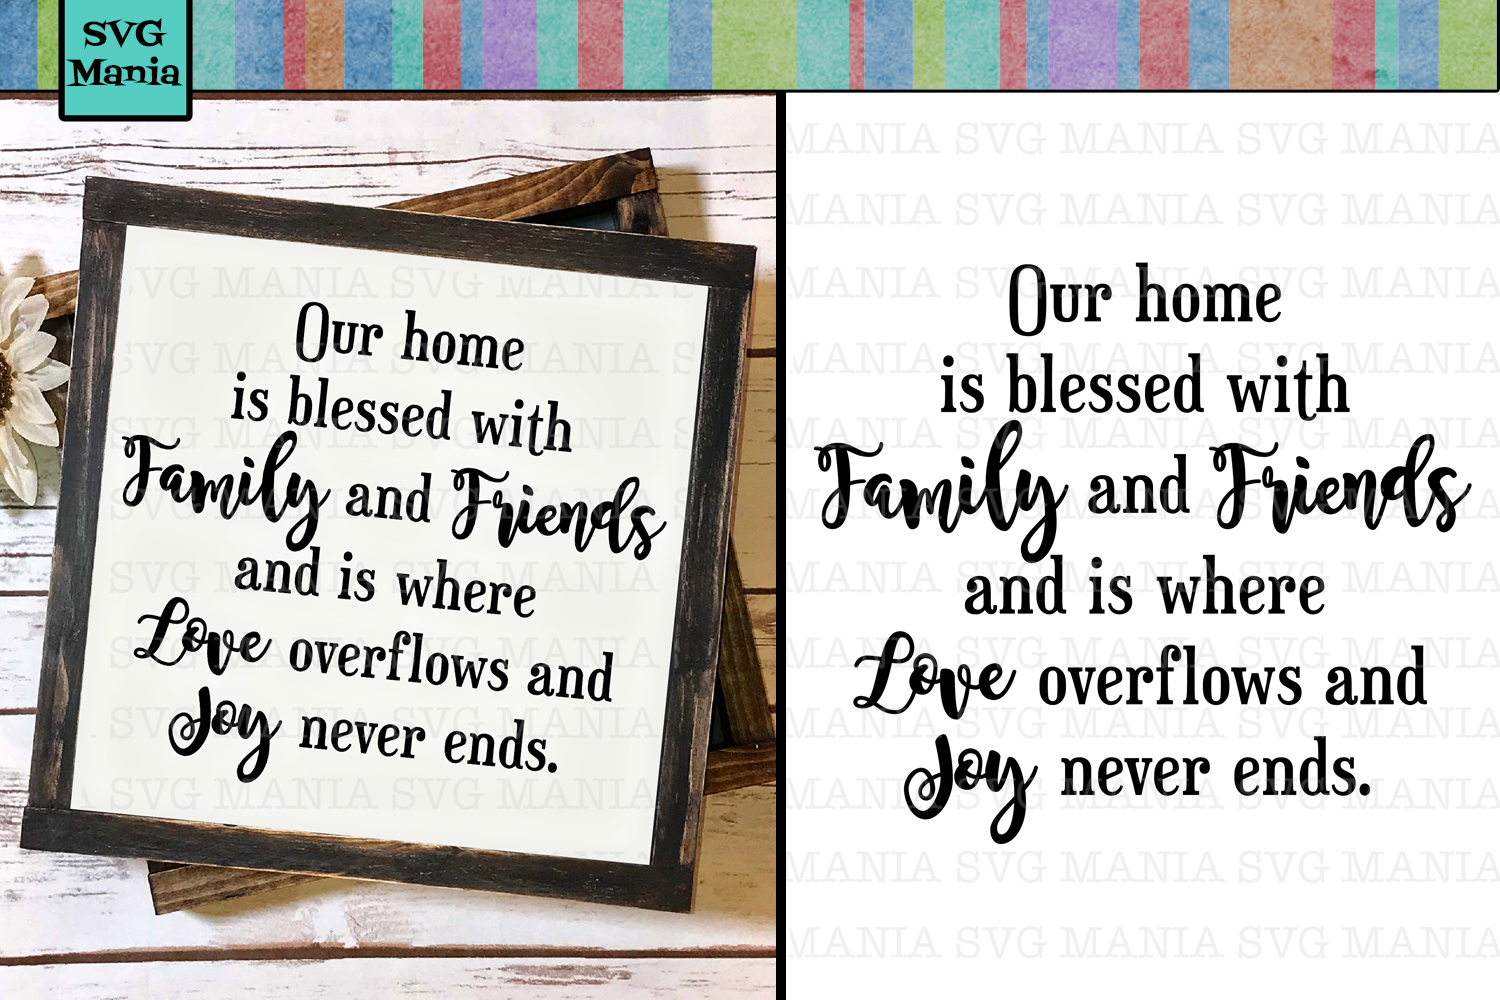 Family Quote SVG File, Blessed Home SVG, Joy and Love SVG example image 1